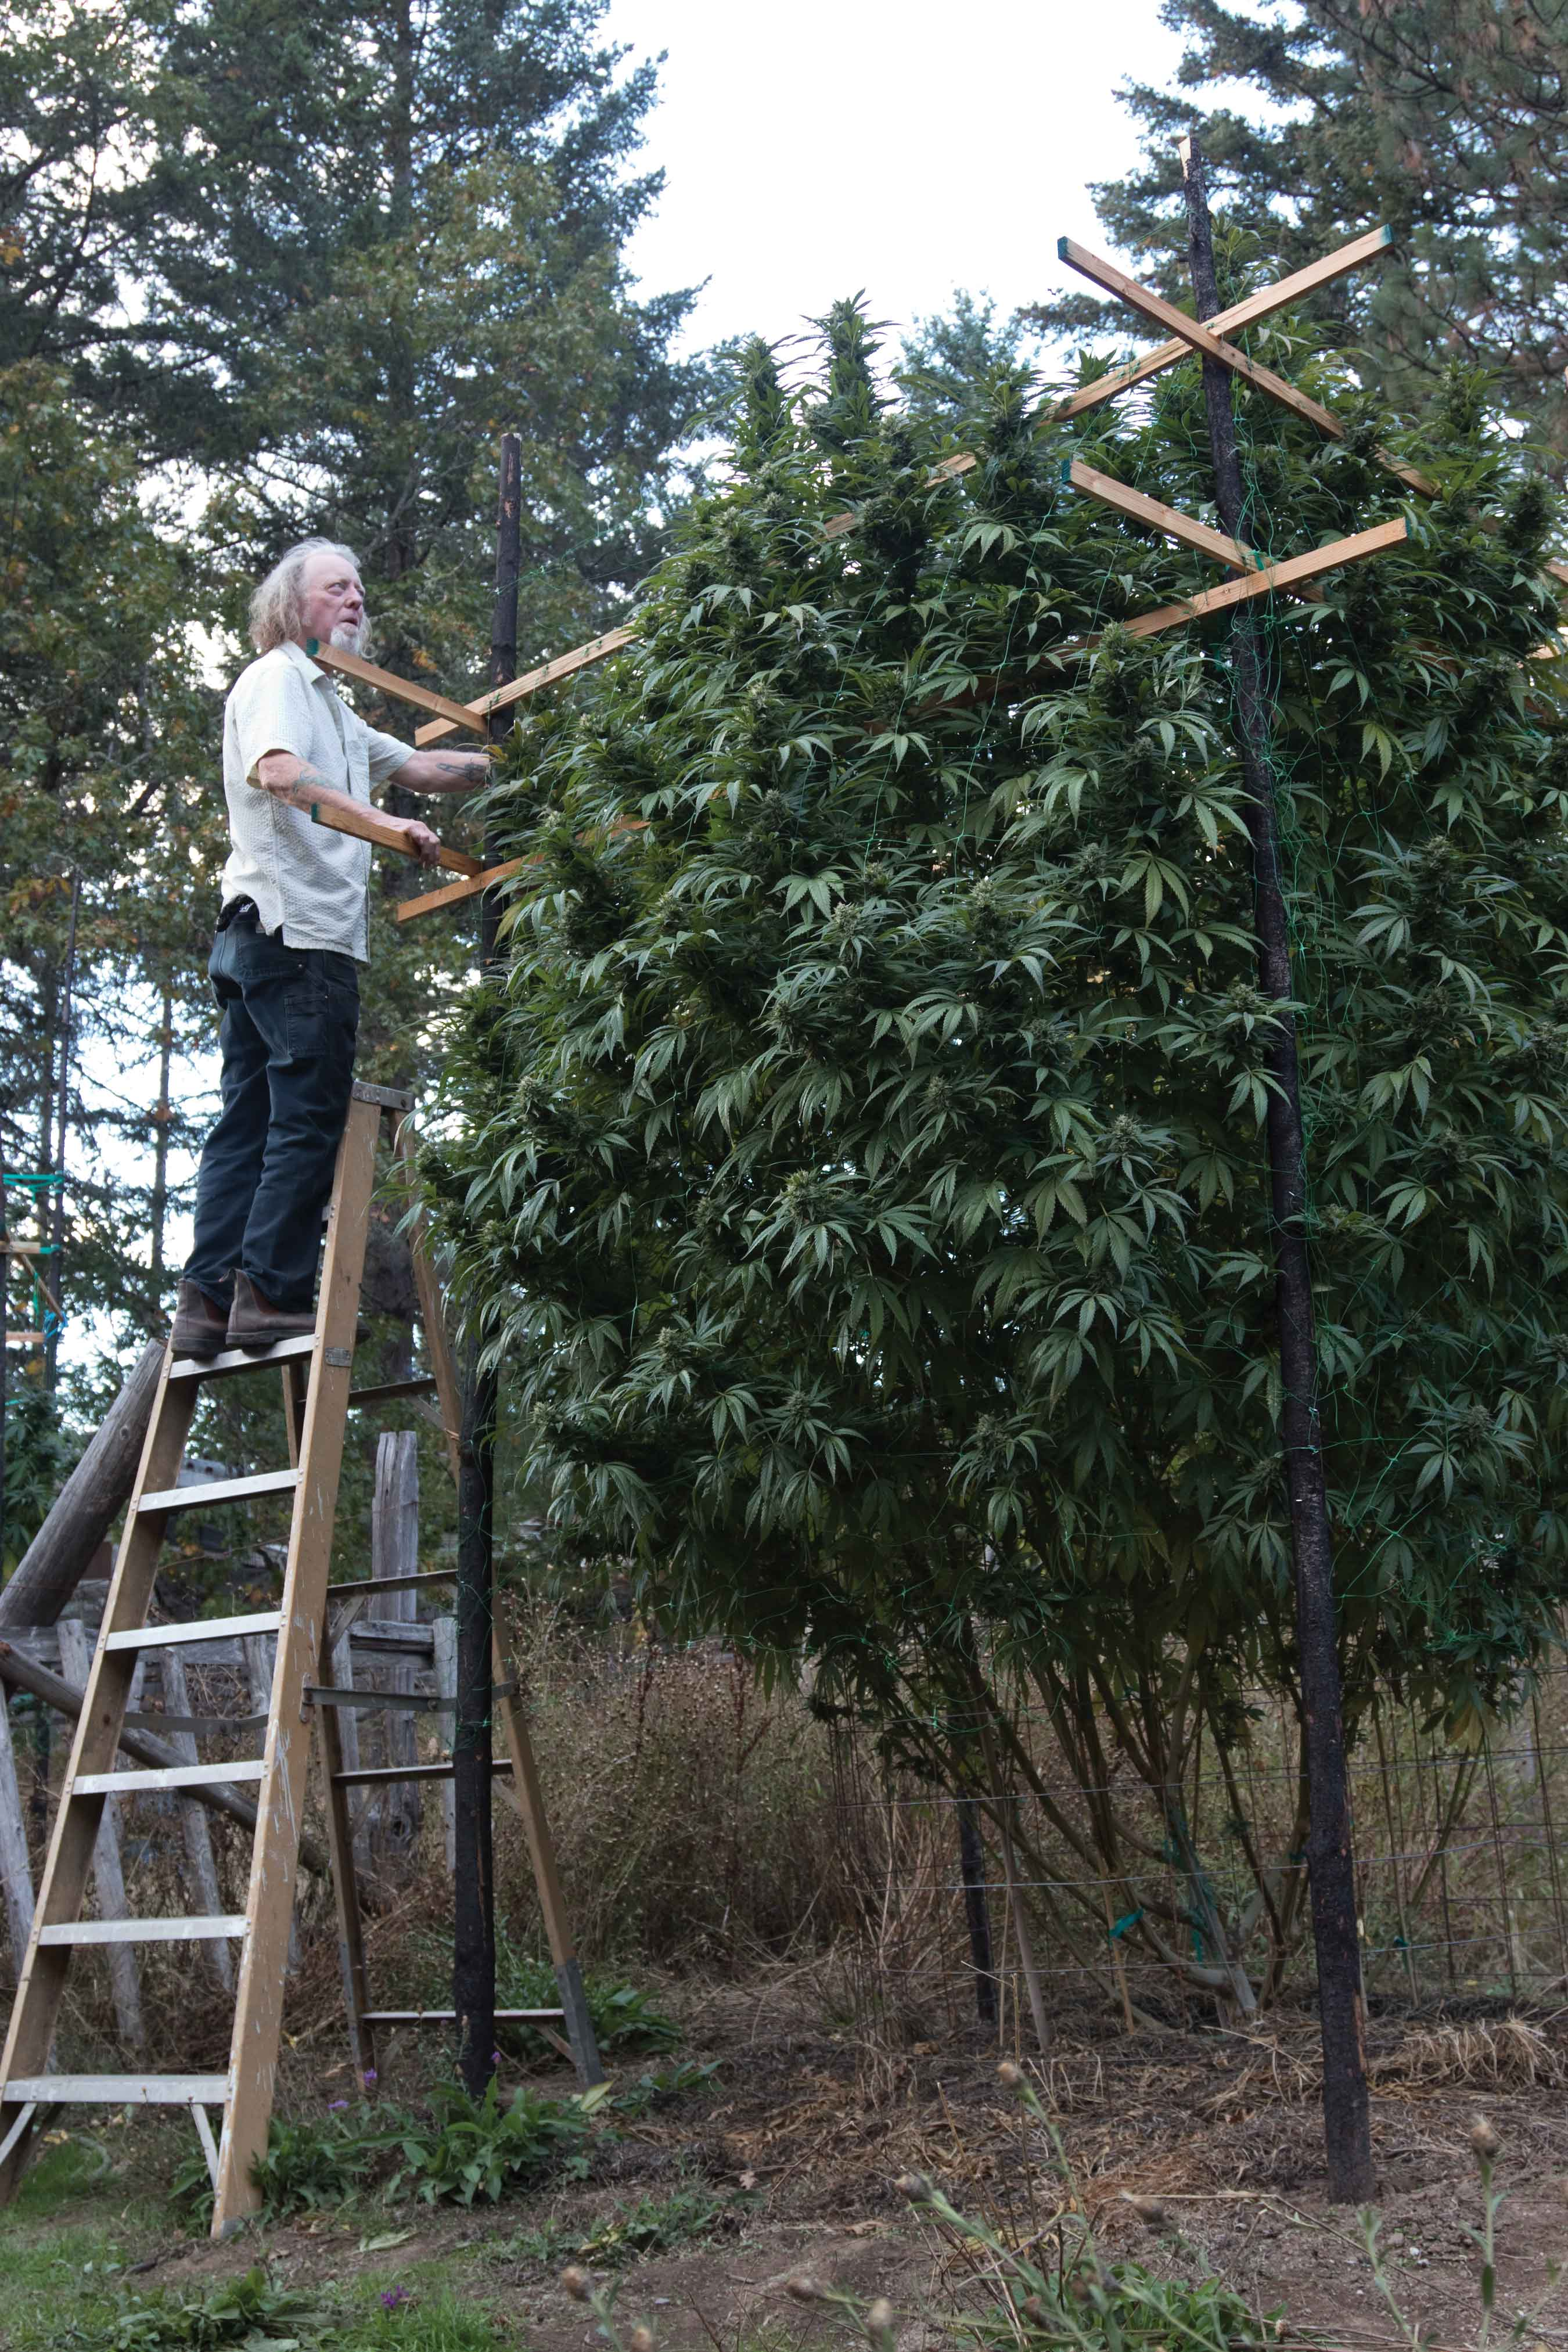 Giant Plants of Southern Oregon • High Times